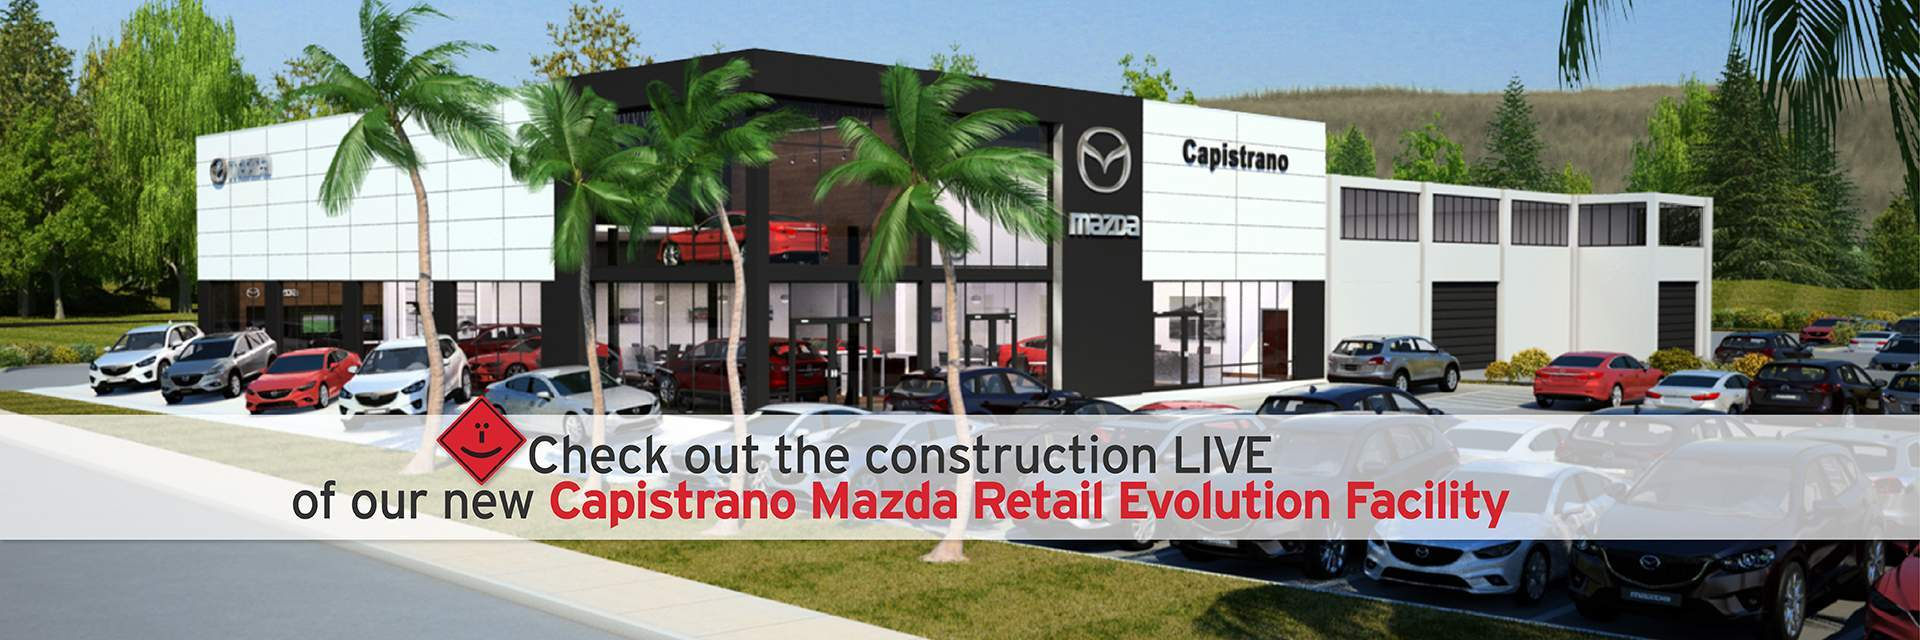 Our new Capistrano Mazda Retail Evolution Facility - opening Fall 2017!